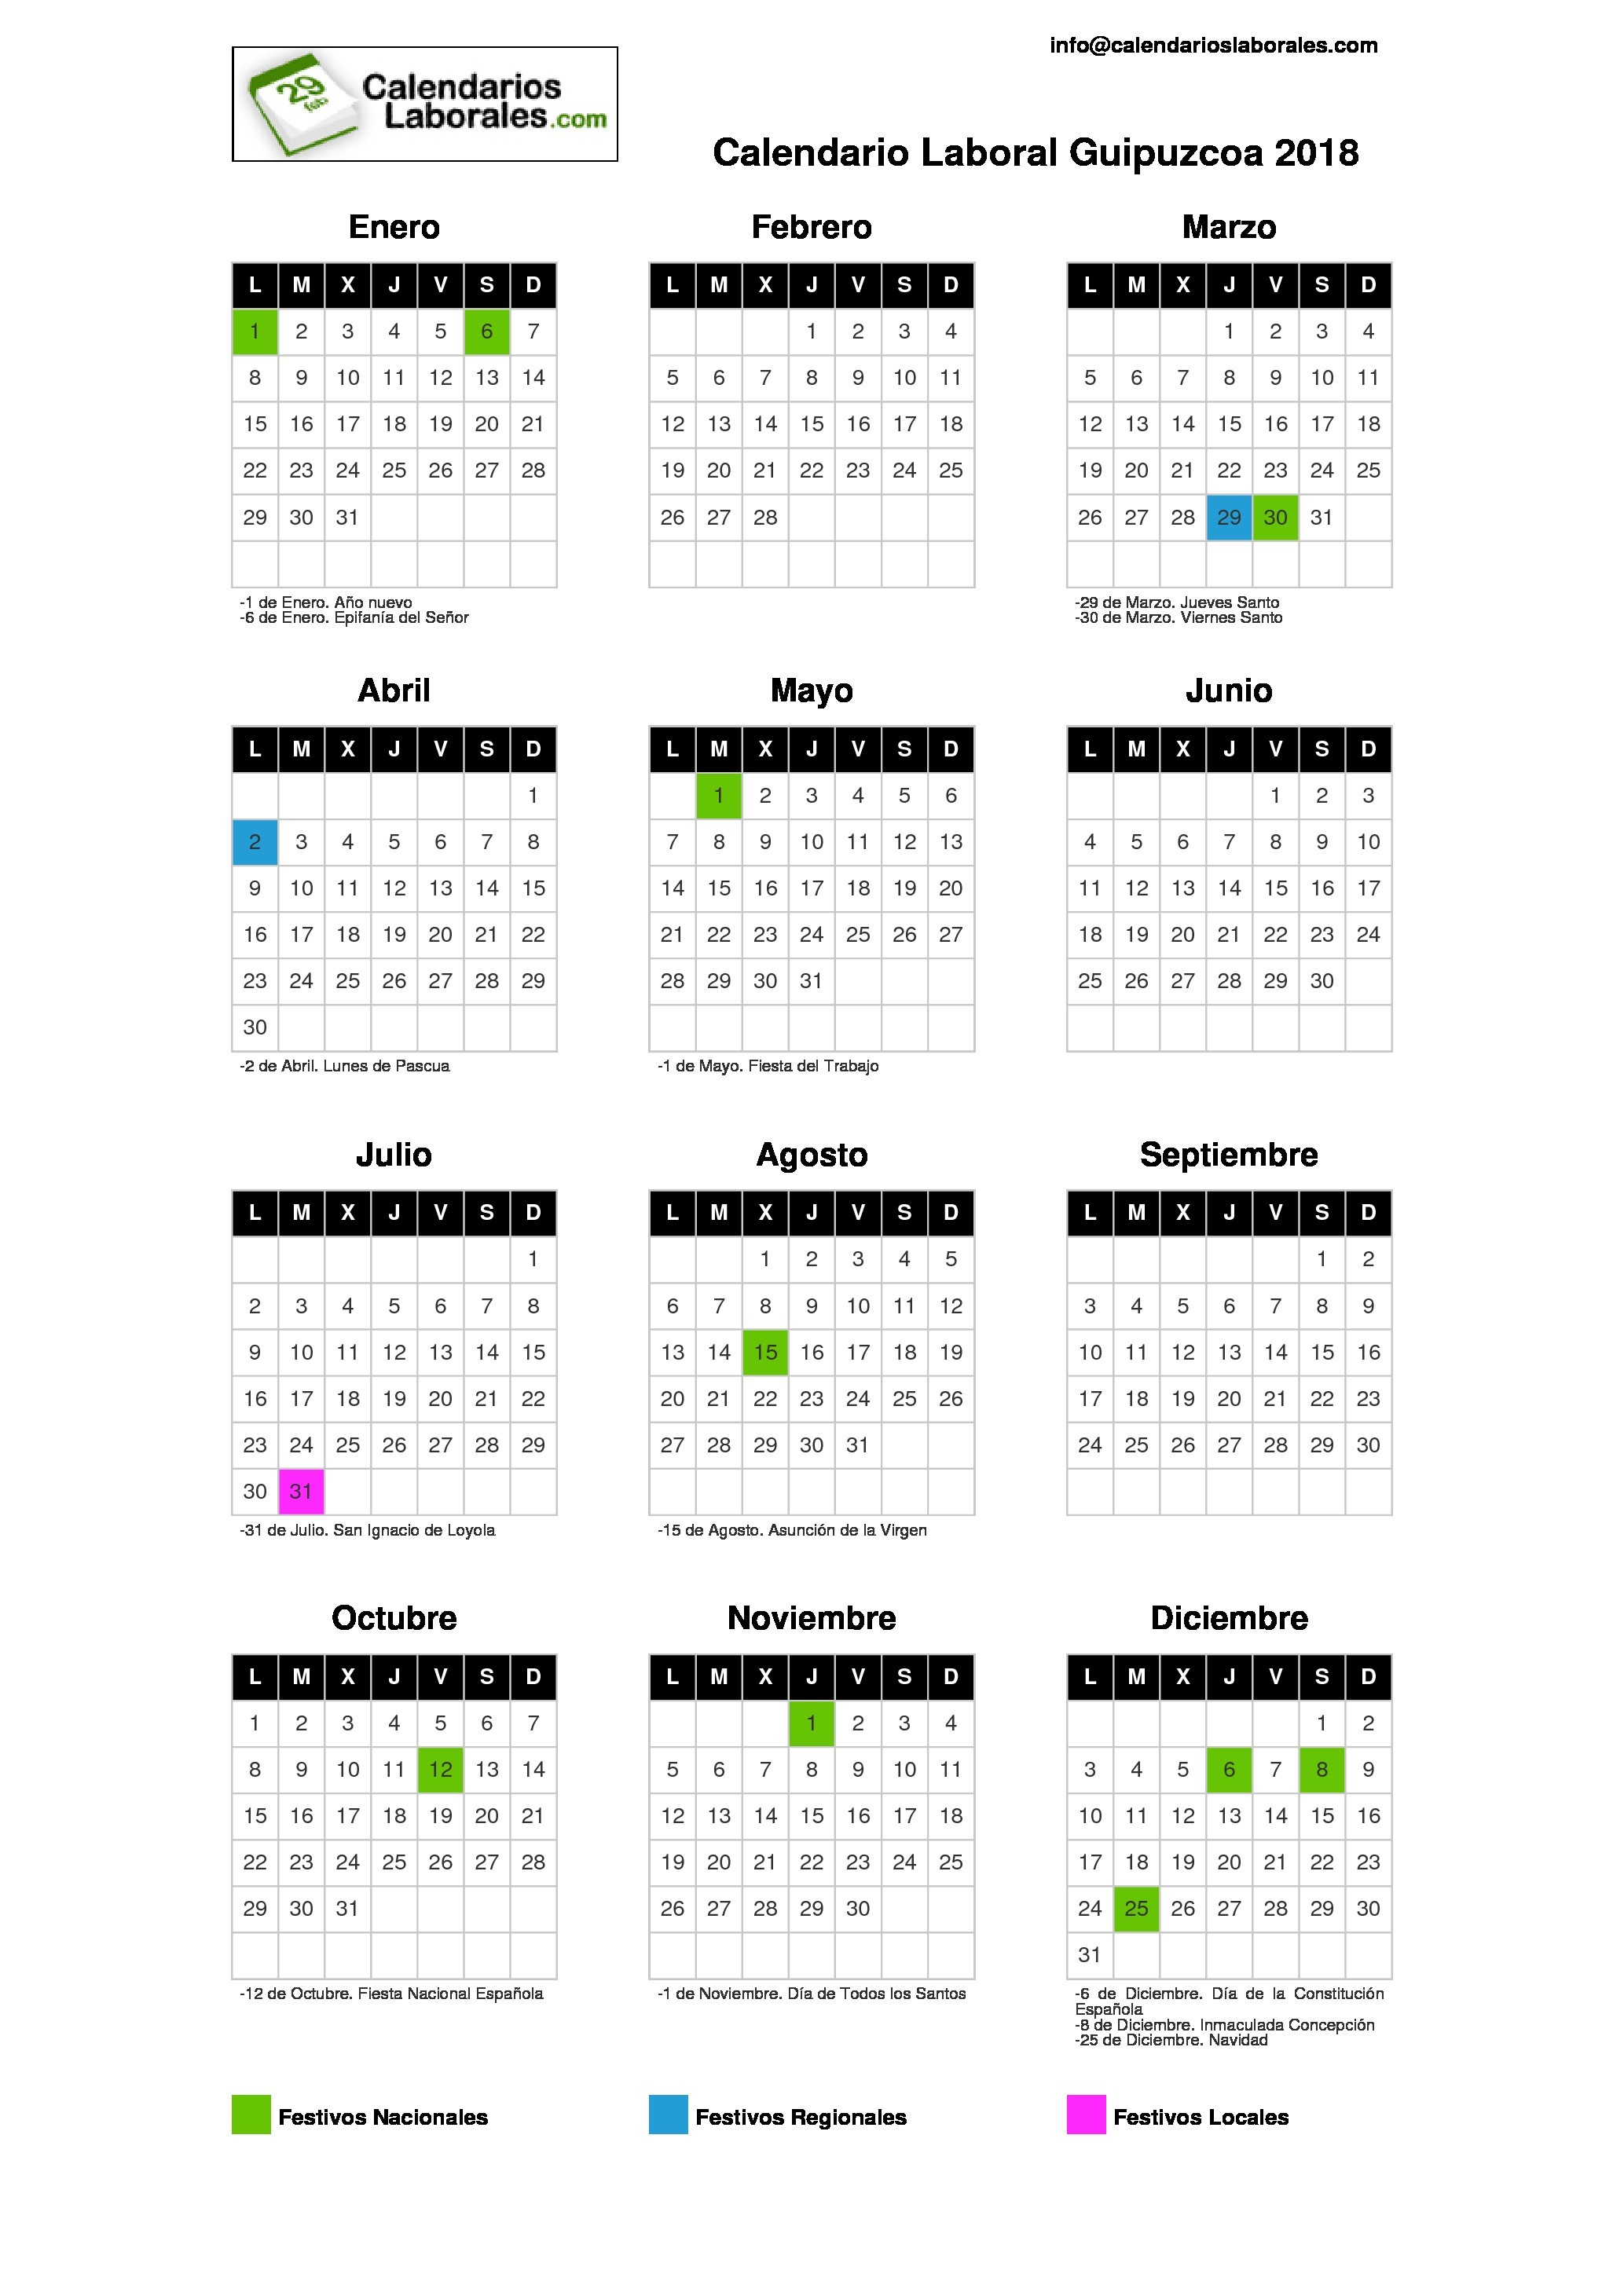 Calendario Laboral Guipuzcoa 2018